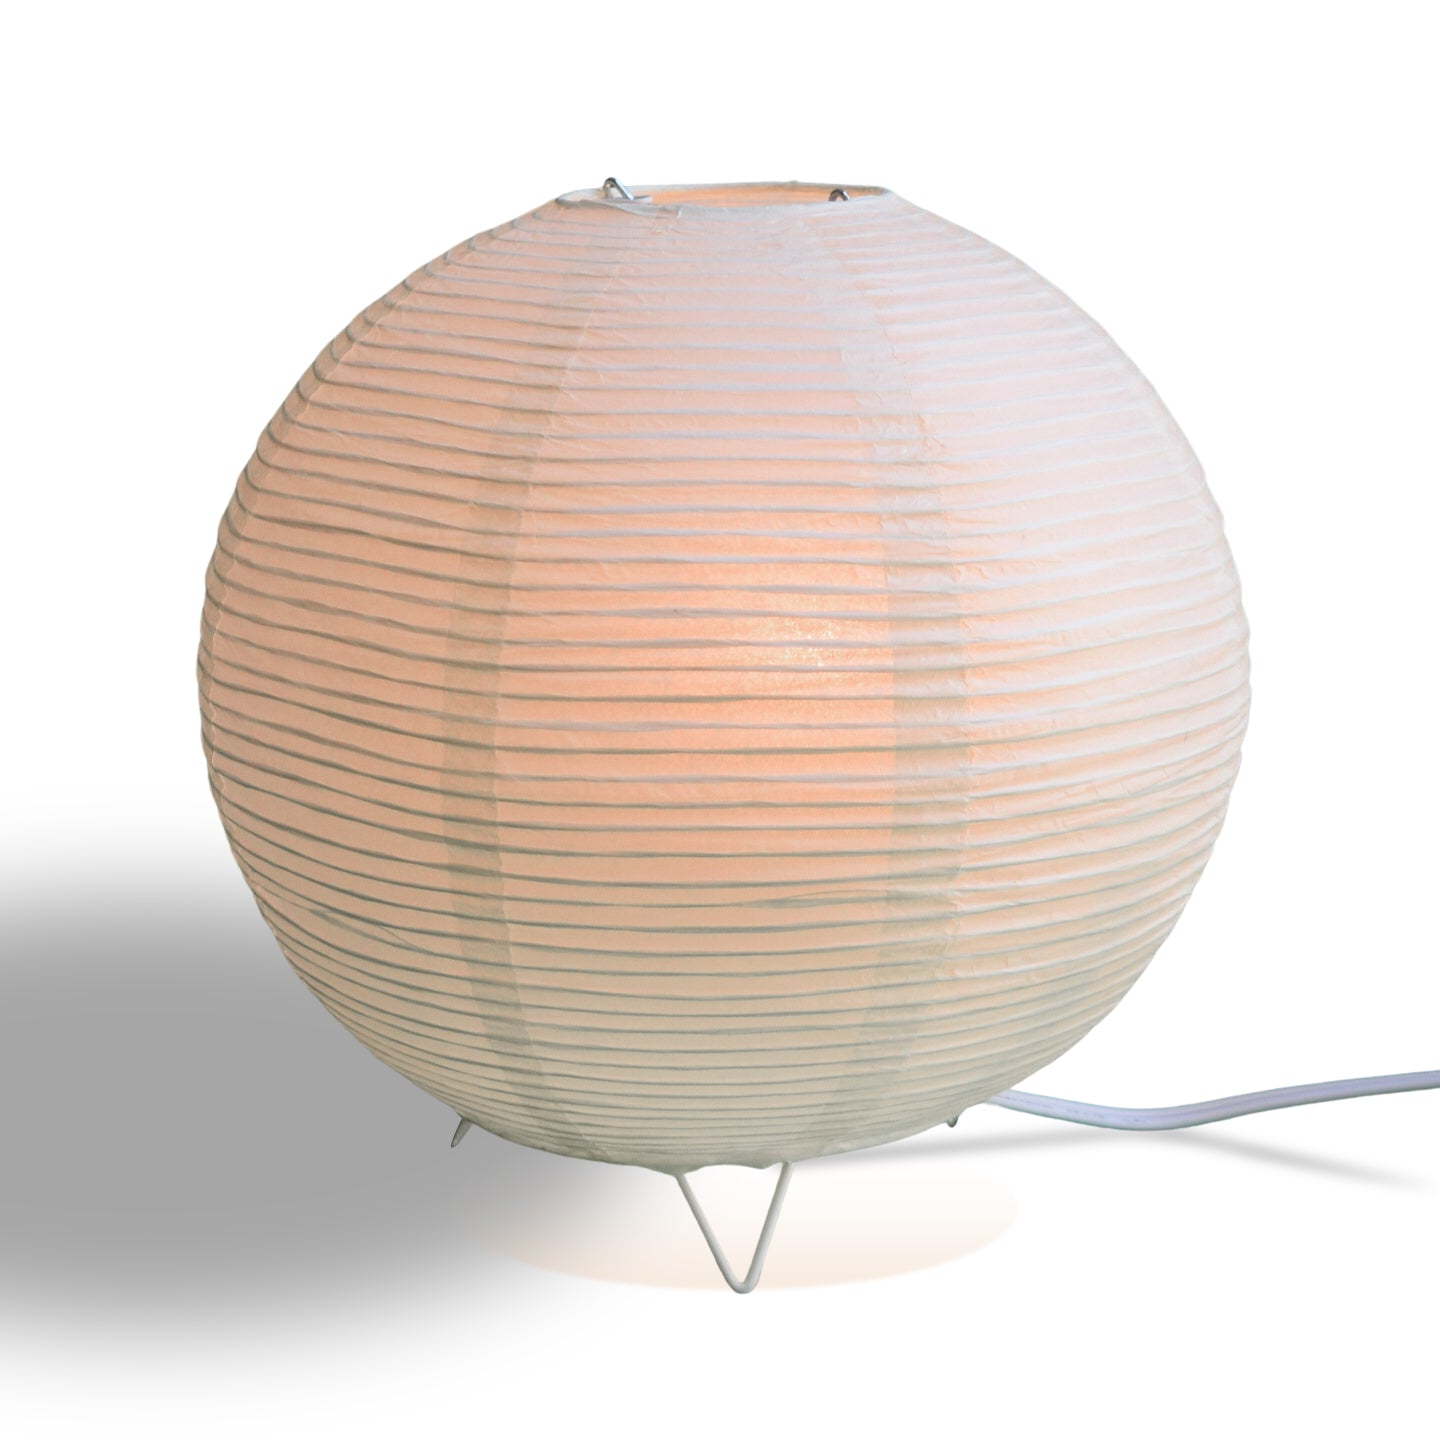 Beige/Ivory Corded Round Table Top Lantern Lamp Kit w/ Light Bulb, Fine Line Paper Moon - PaperLanternStore.com - Paper Lanterns, Decor, Party Lights & More